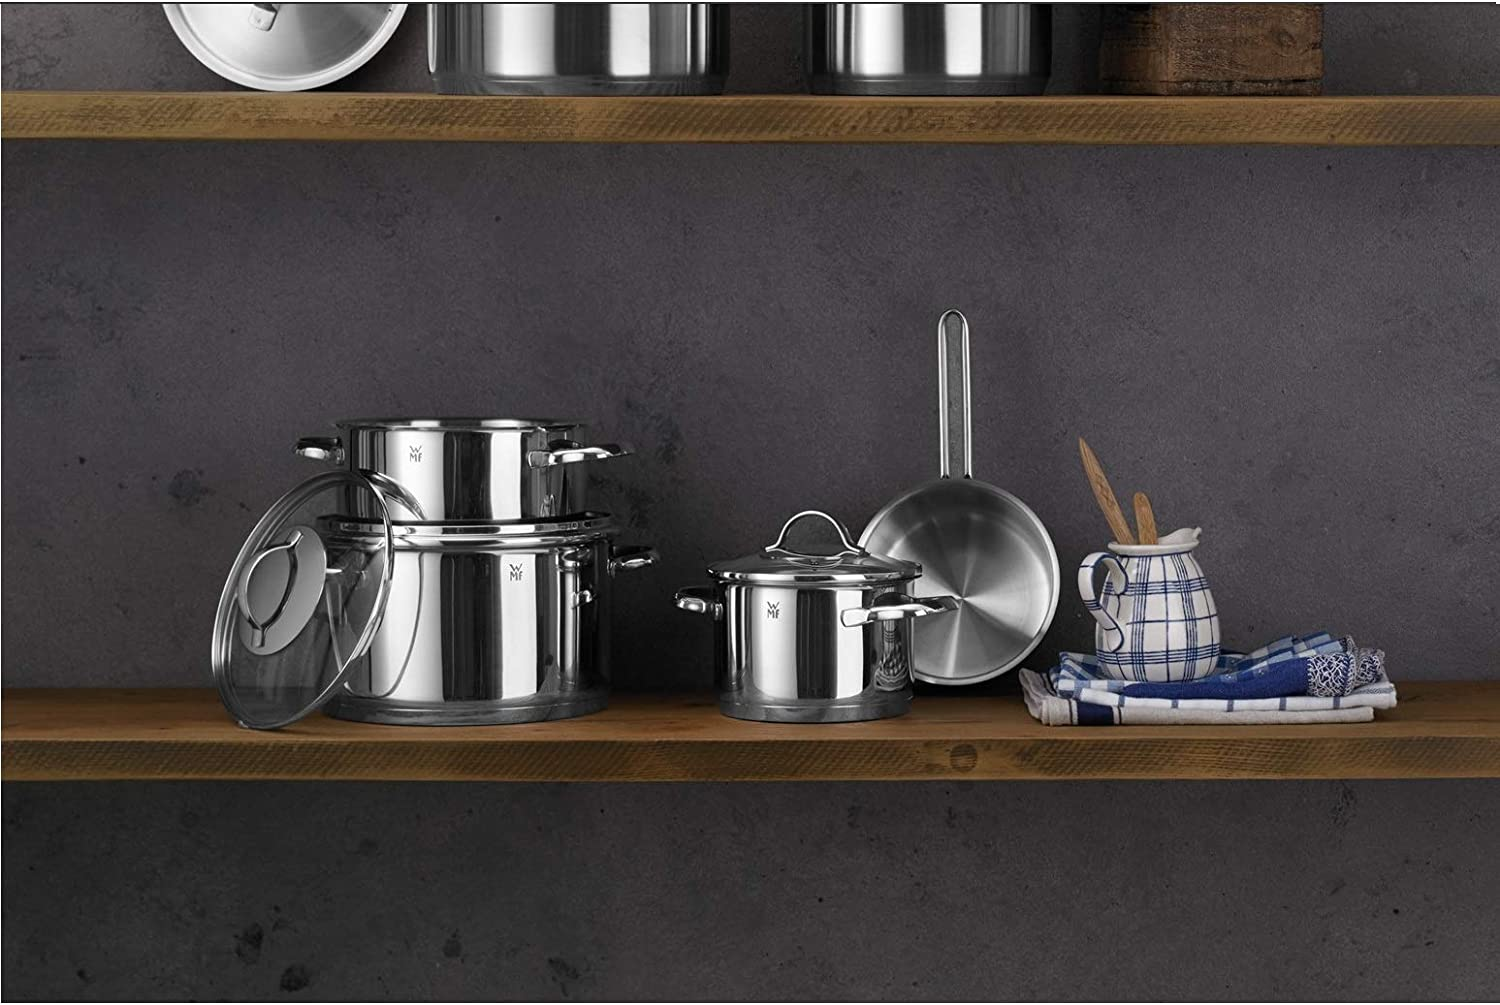 WMF stainless steel pots and pans